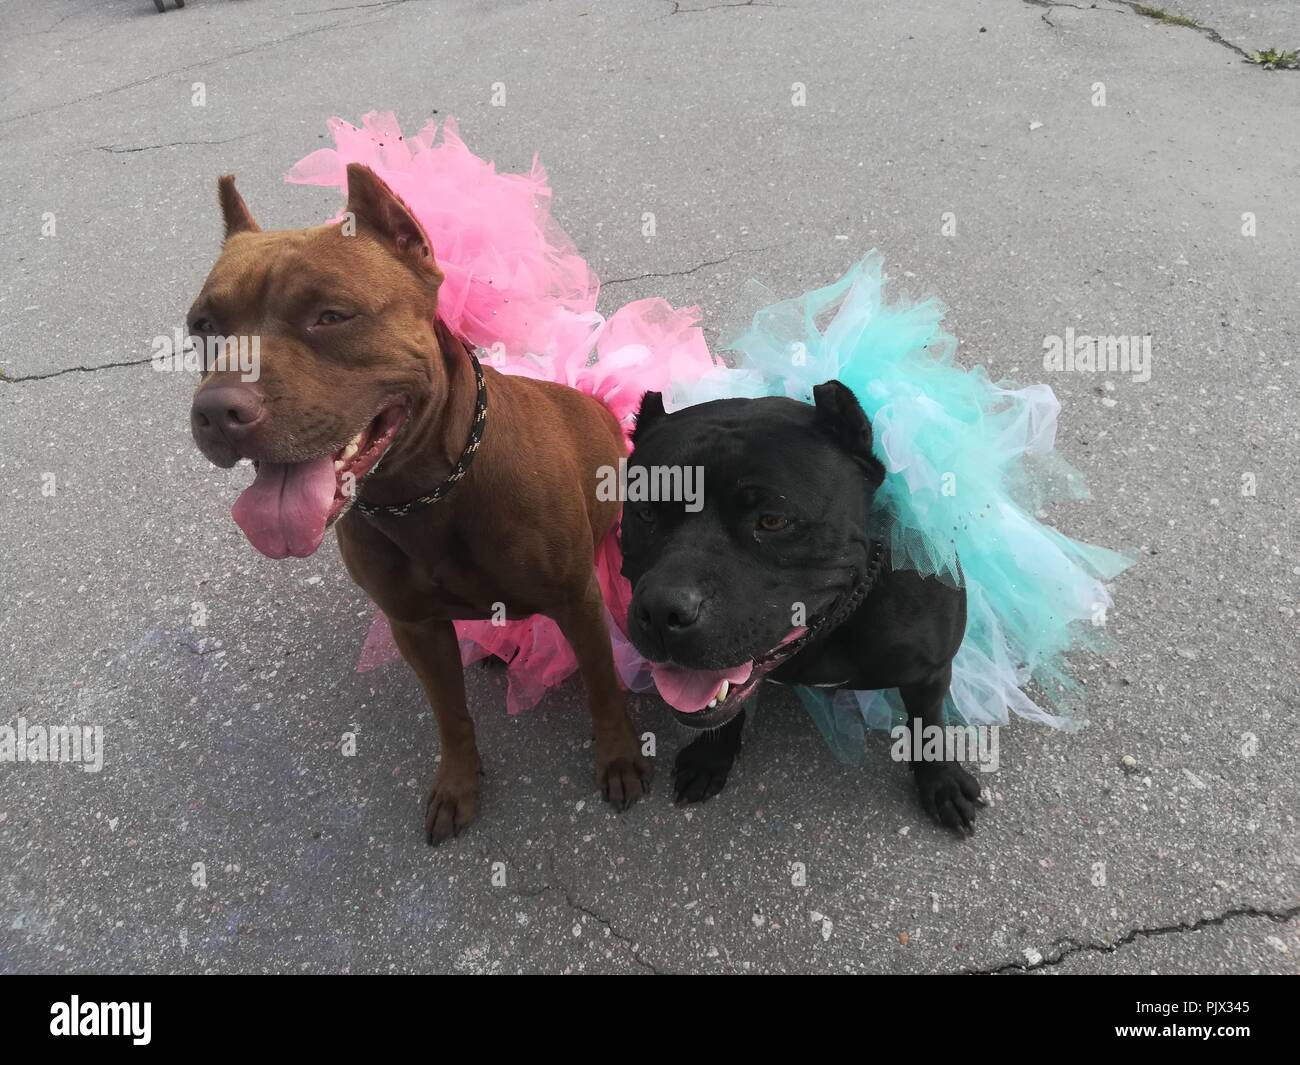 St.Petersburg, Russia. 9th September 2018. Costume Parade at the Pit Bull and Staffordshire Bull Terrier dog show in Aviators' Park at St.Petersburg, Russia Credit: Nastia M/Alamy Live News Stock Photo